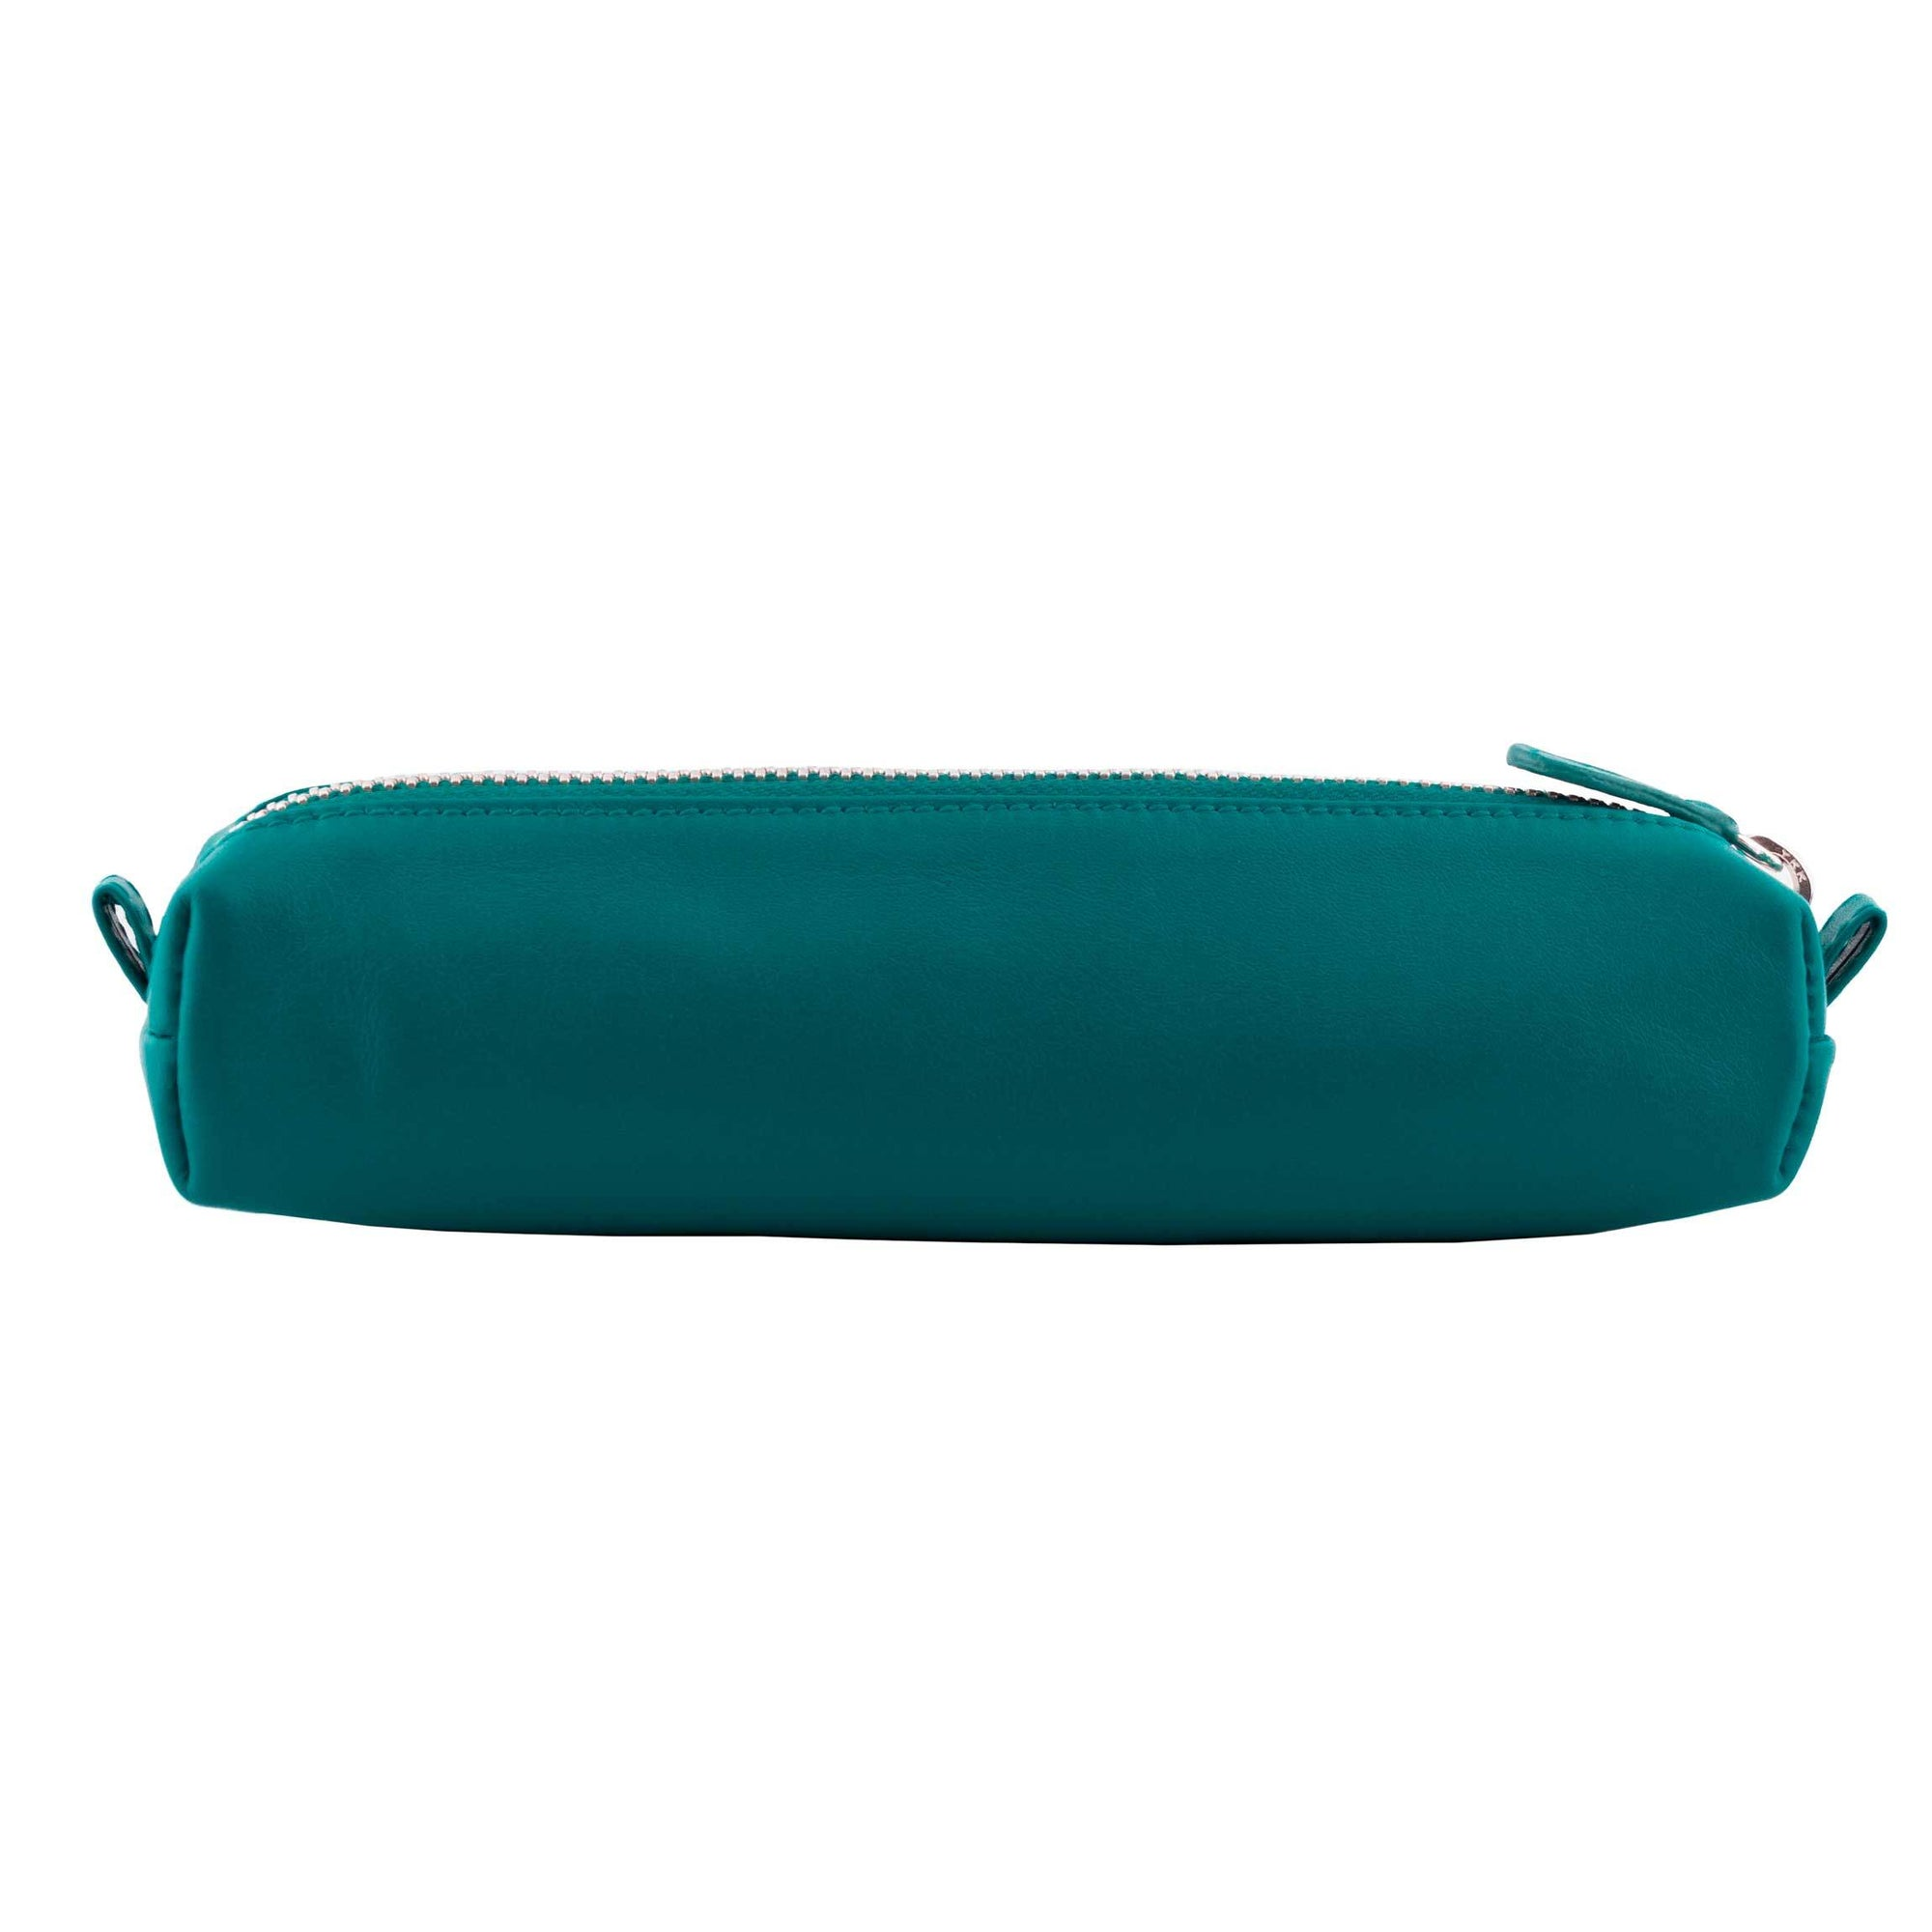 Multi-Purpose Zippered Leather Pen Pencil Case in Various Colors - Turq Green